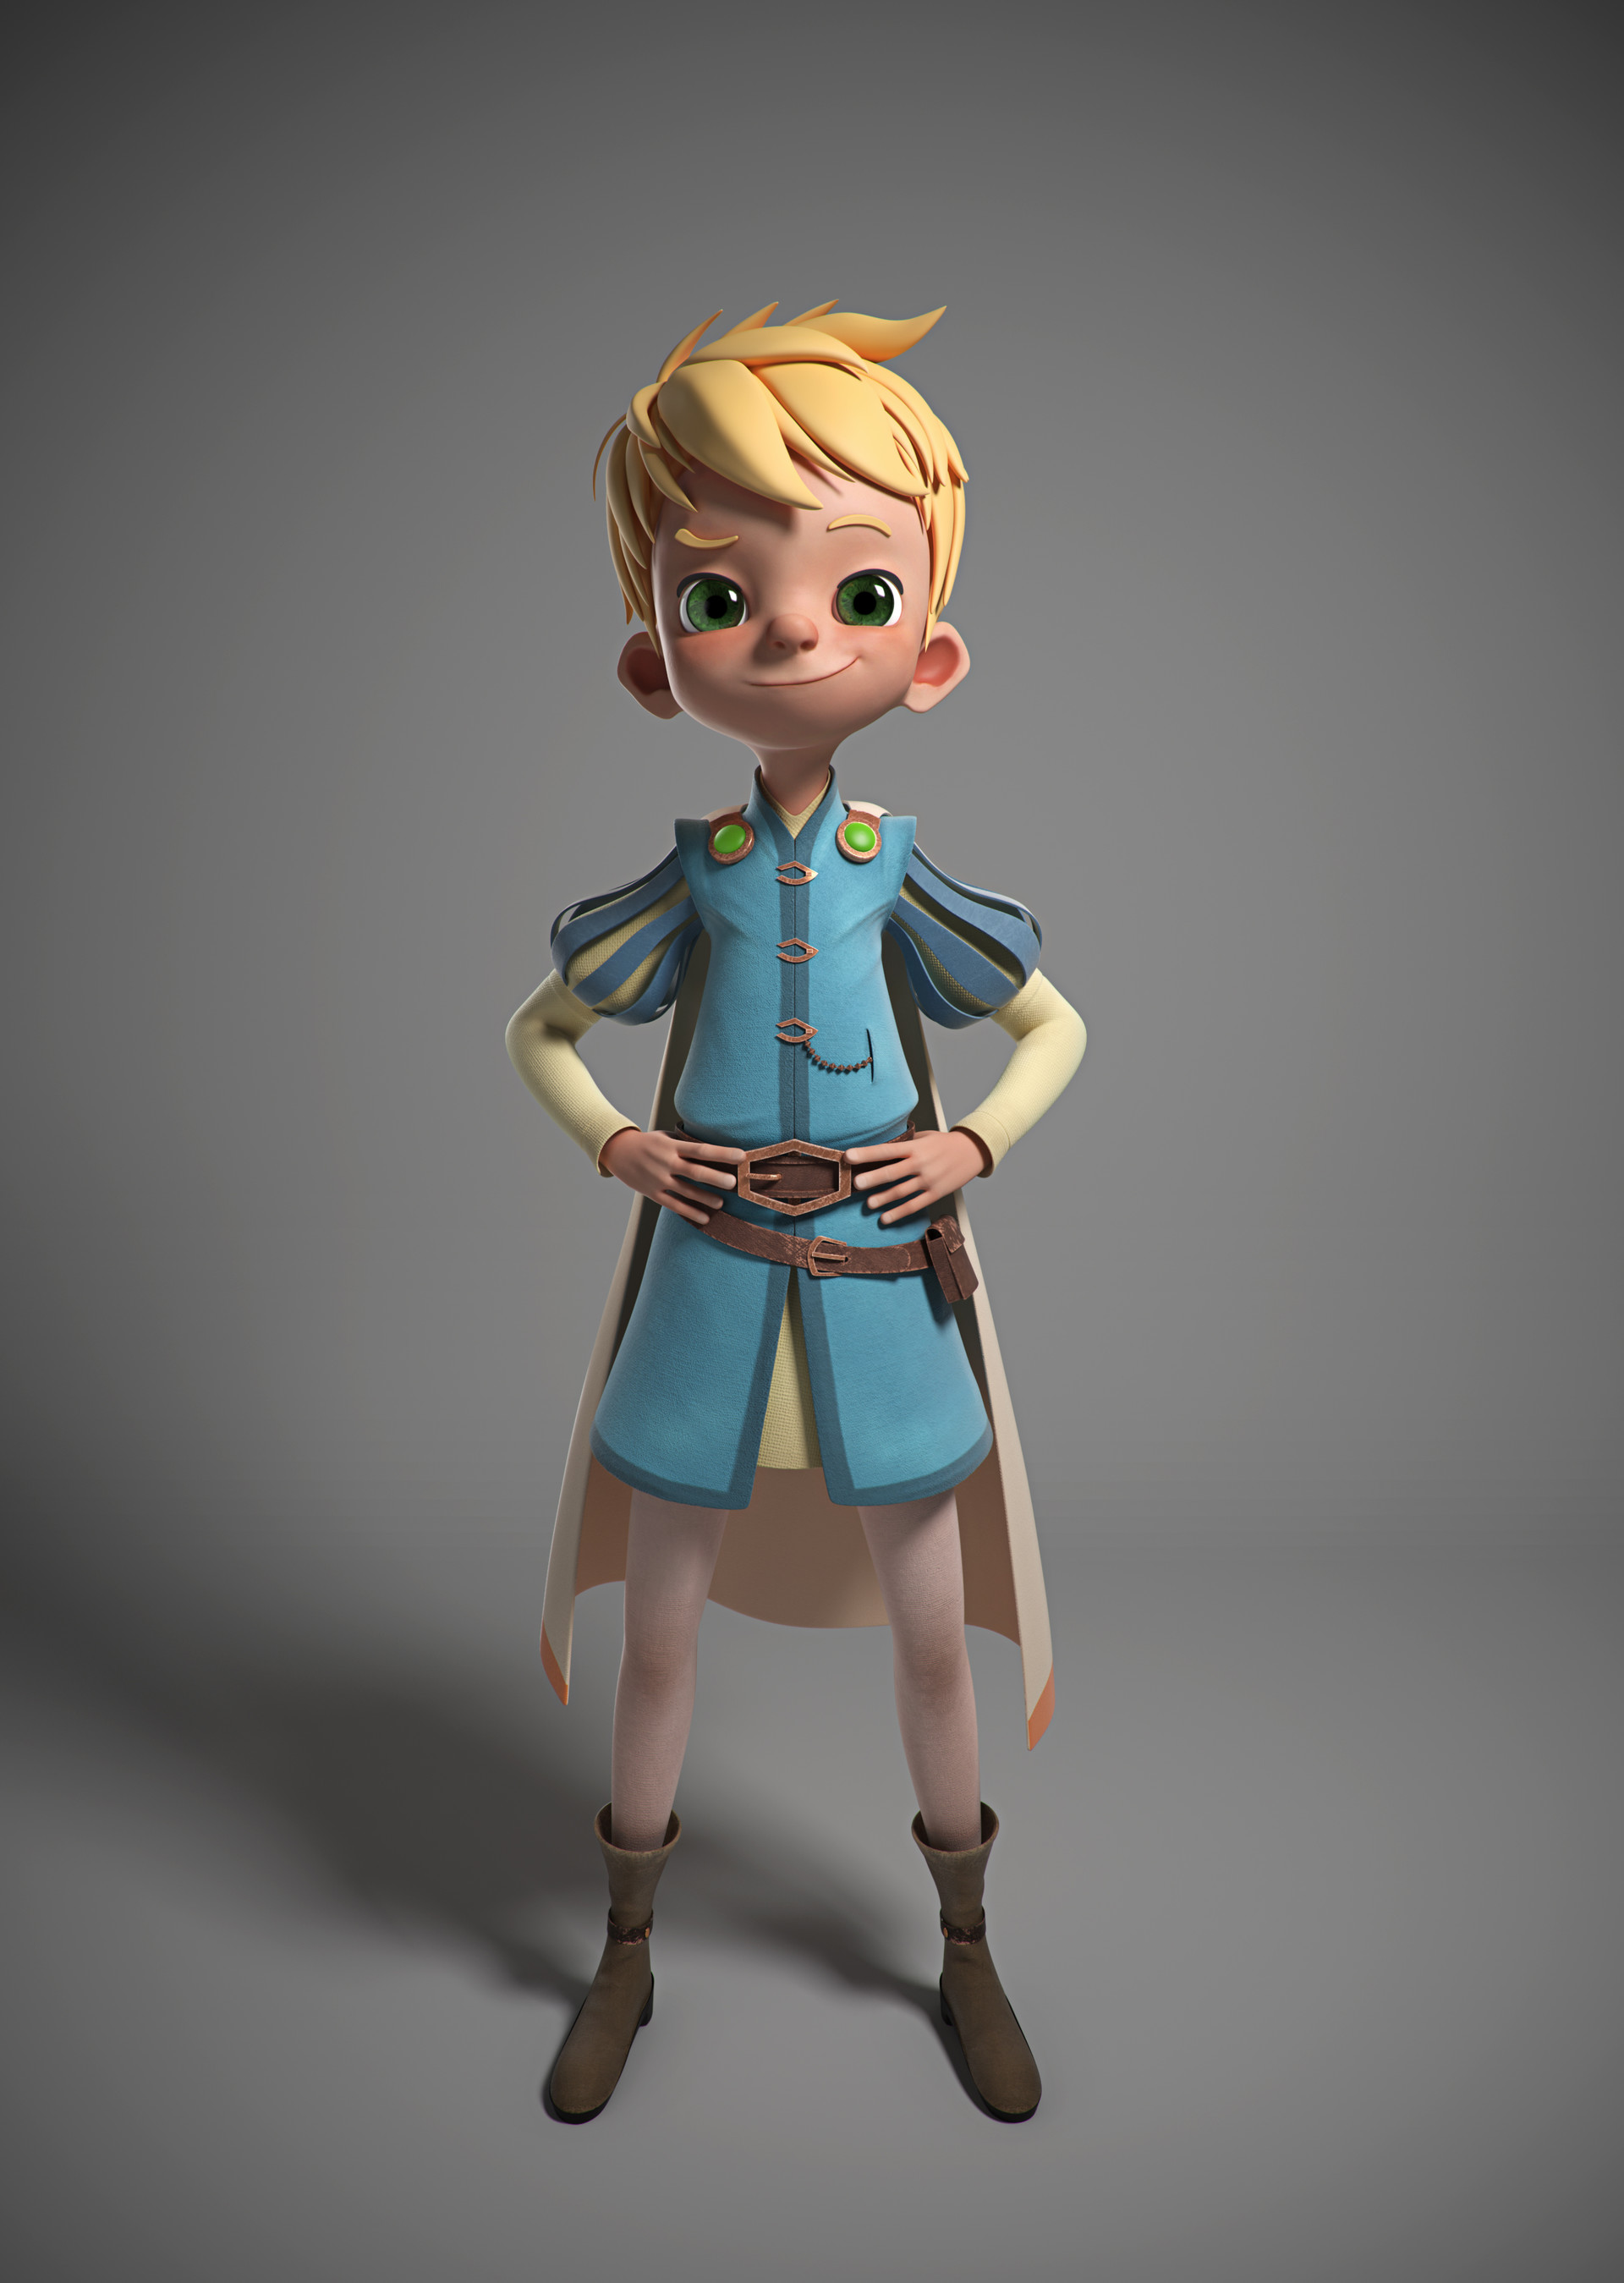 Free 3d Character Design Software Download : Artstation the king s son léo rezende